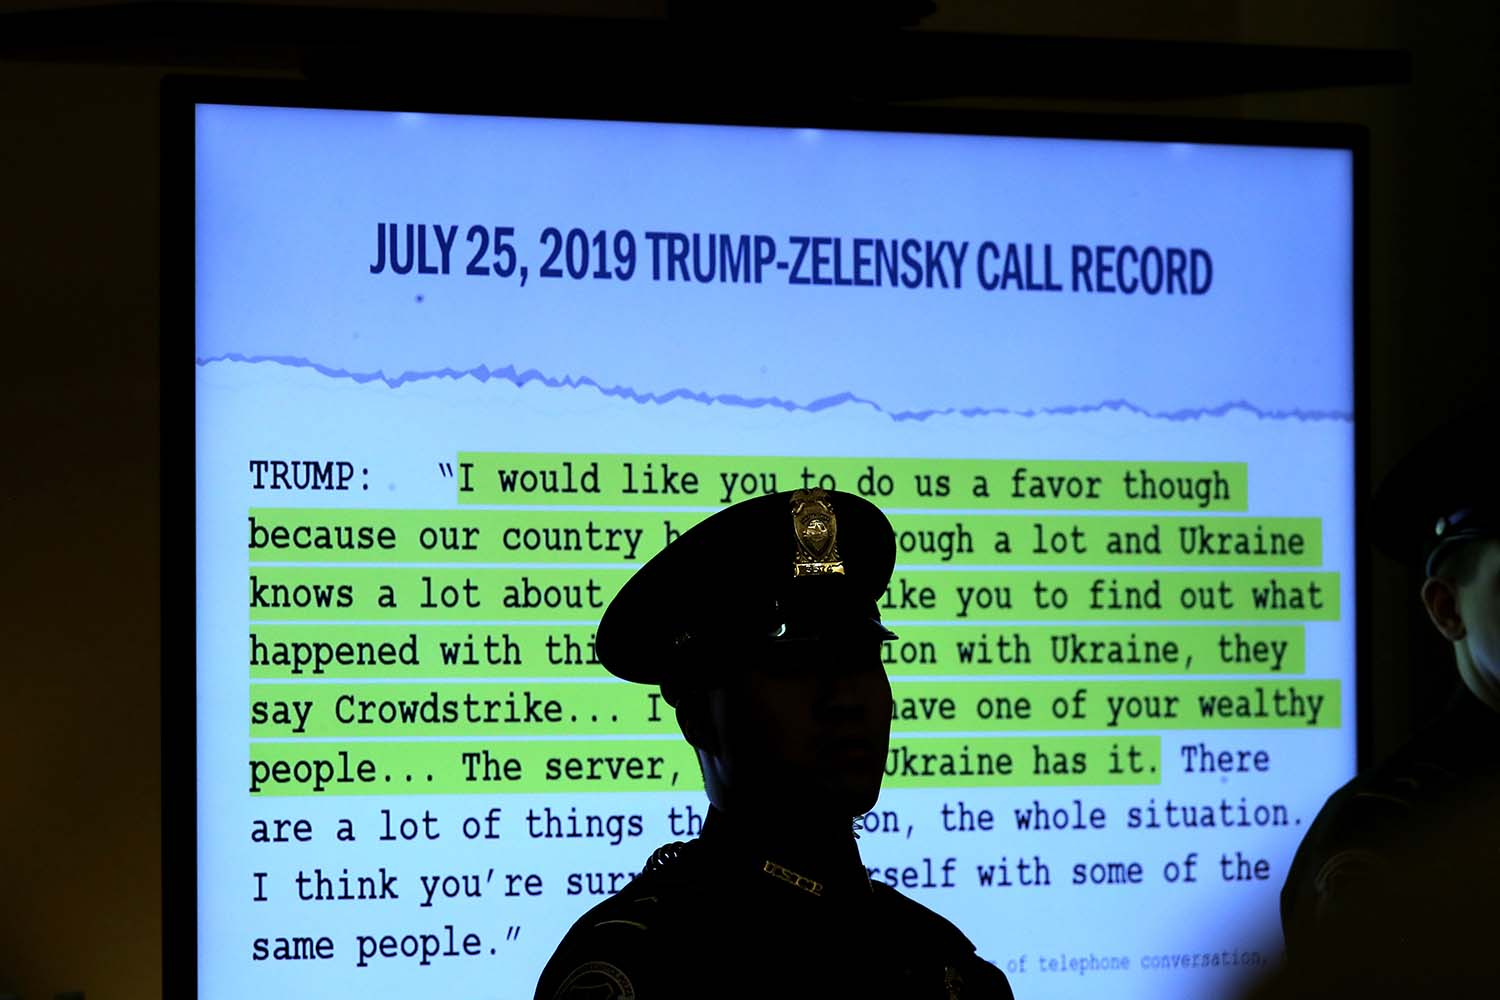 A transcript of a phone call between U.S. President Donald Trump and Ukrainian President Volodymyr Zelensky is displayed during testimony on Capitol Hill in Washington on Nov. 19, 2019.